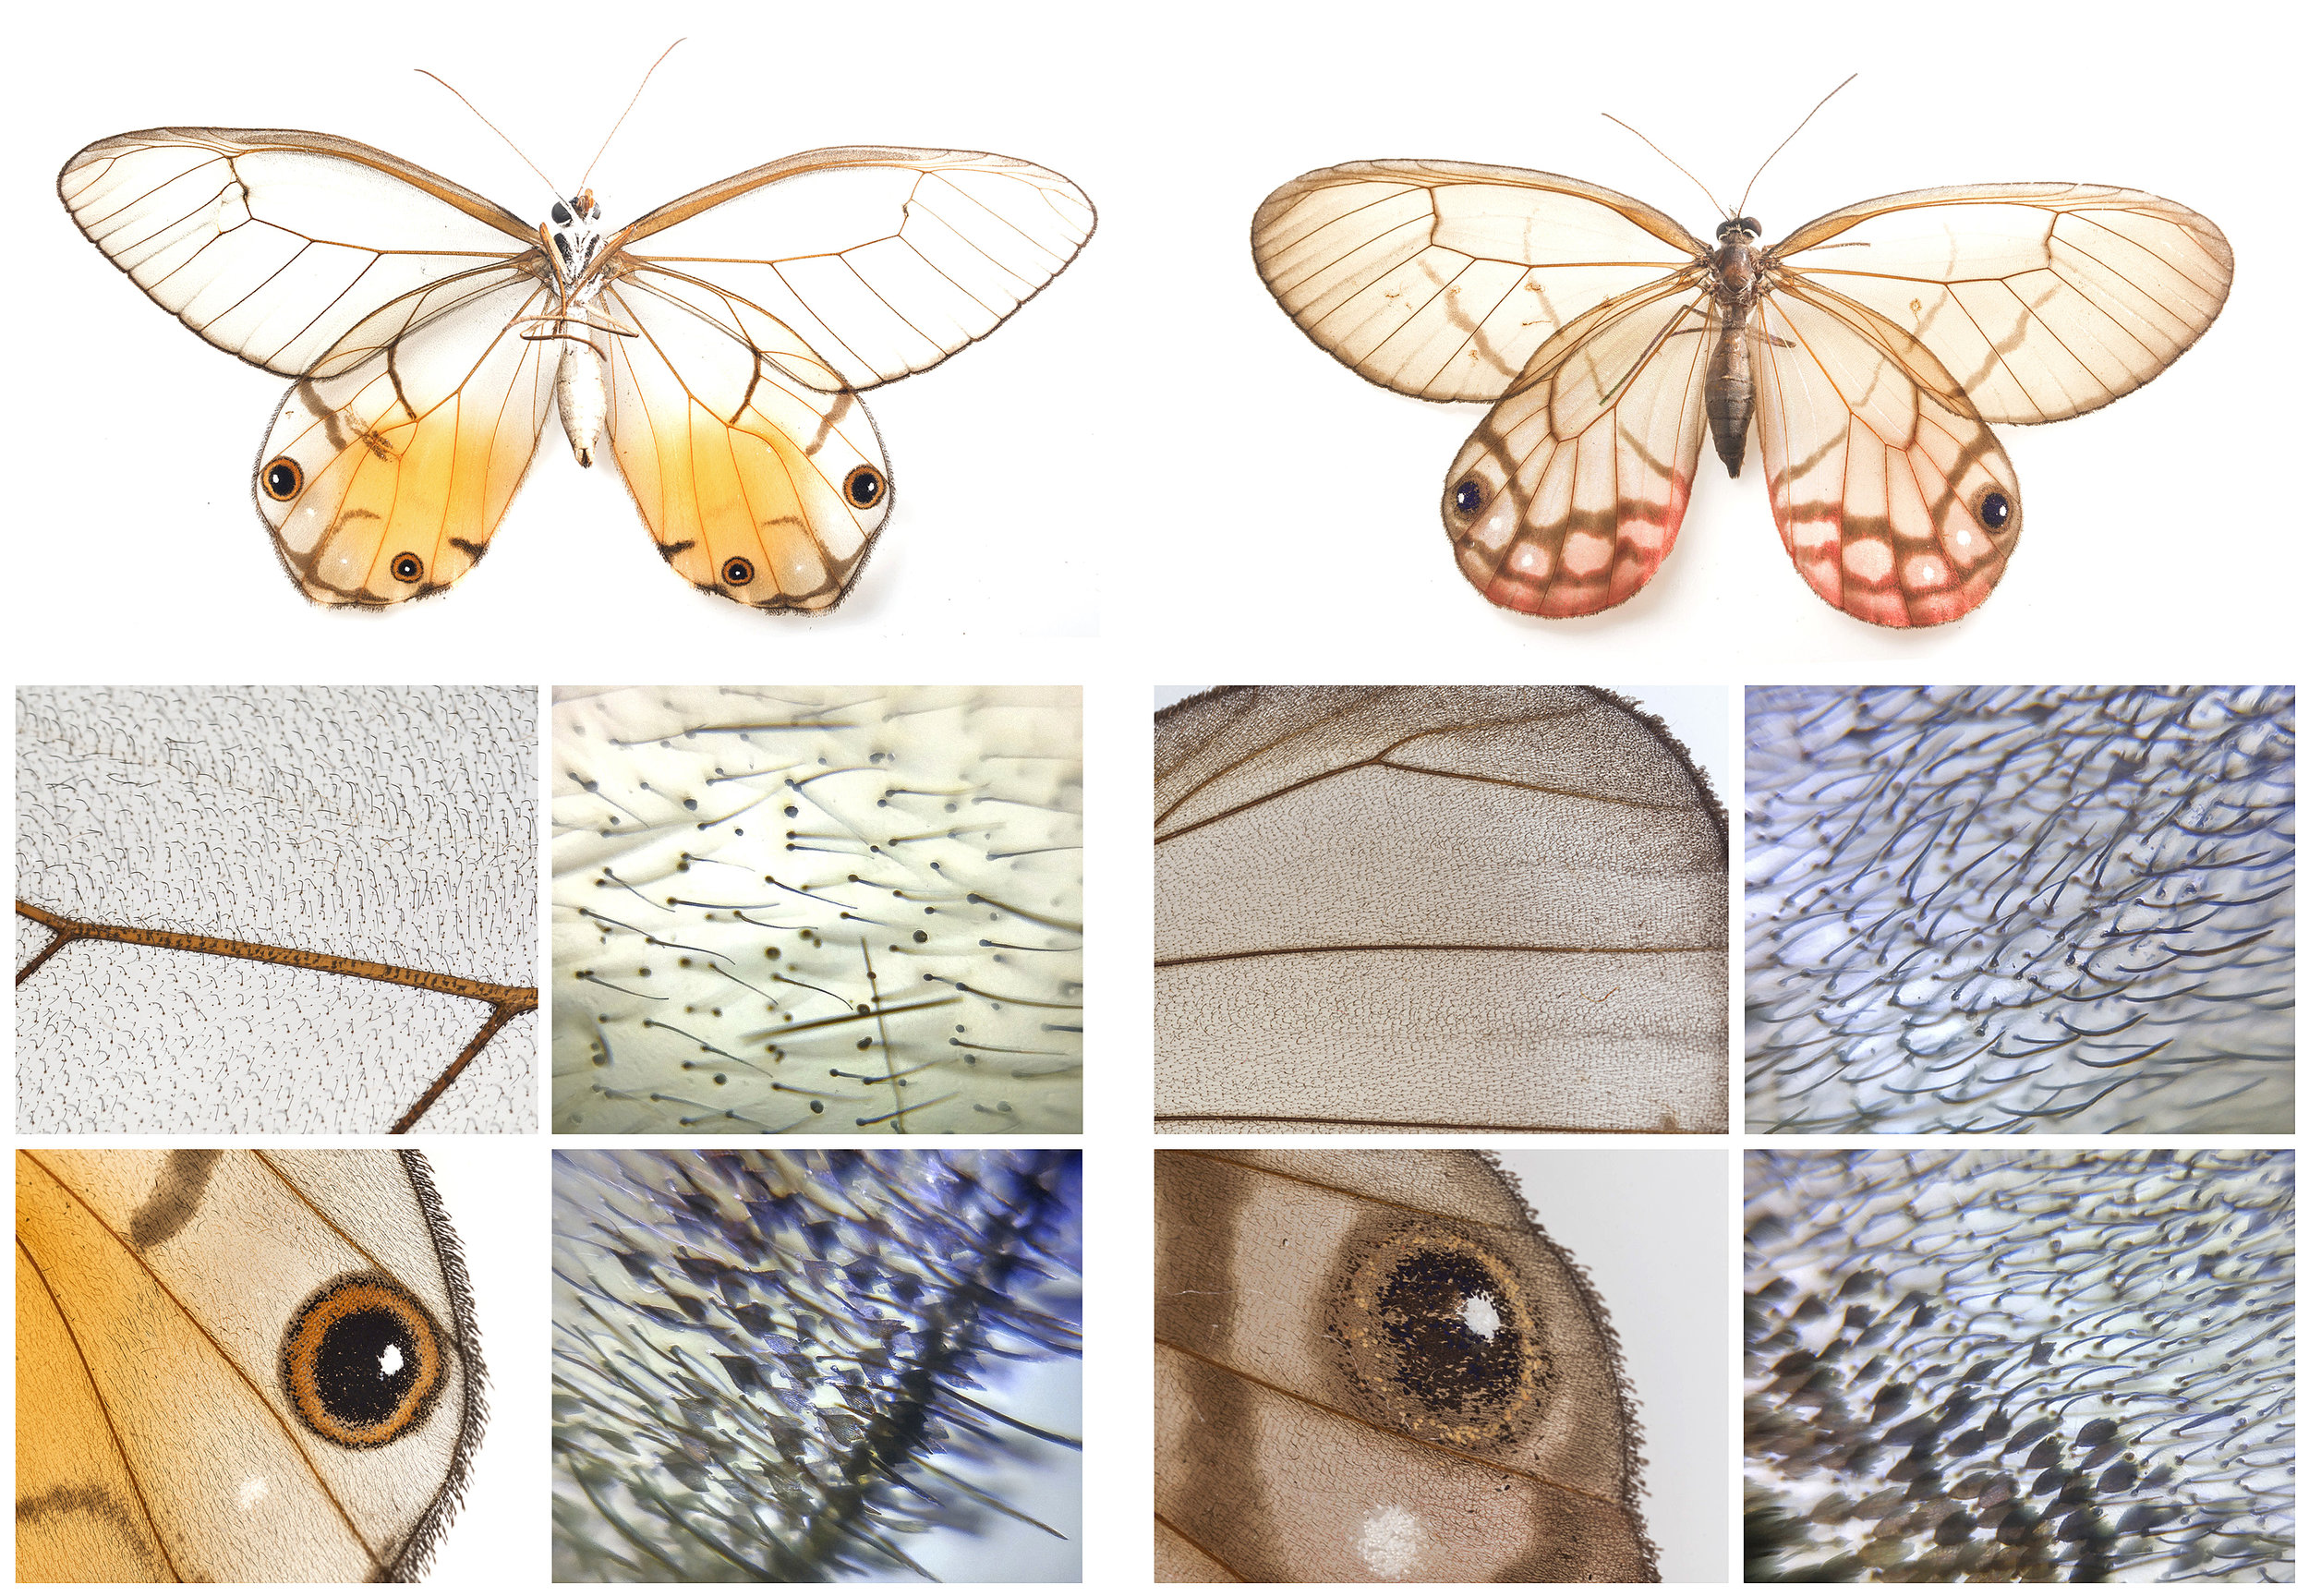 An Amber Phantom butterfly with transparent wings. Combining macro photography and the Foldscope, allowing us to see the different scale structures that make up the colored and transparent regions of the wing.